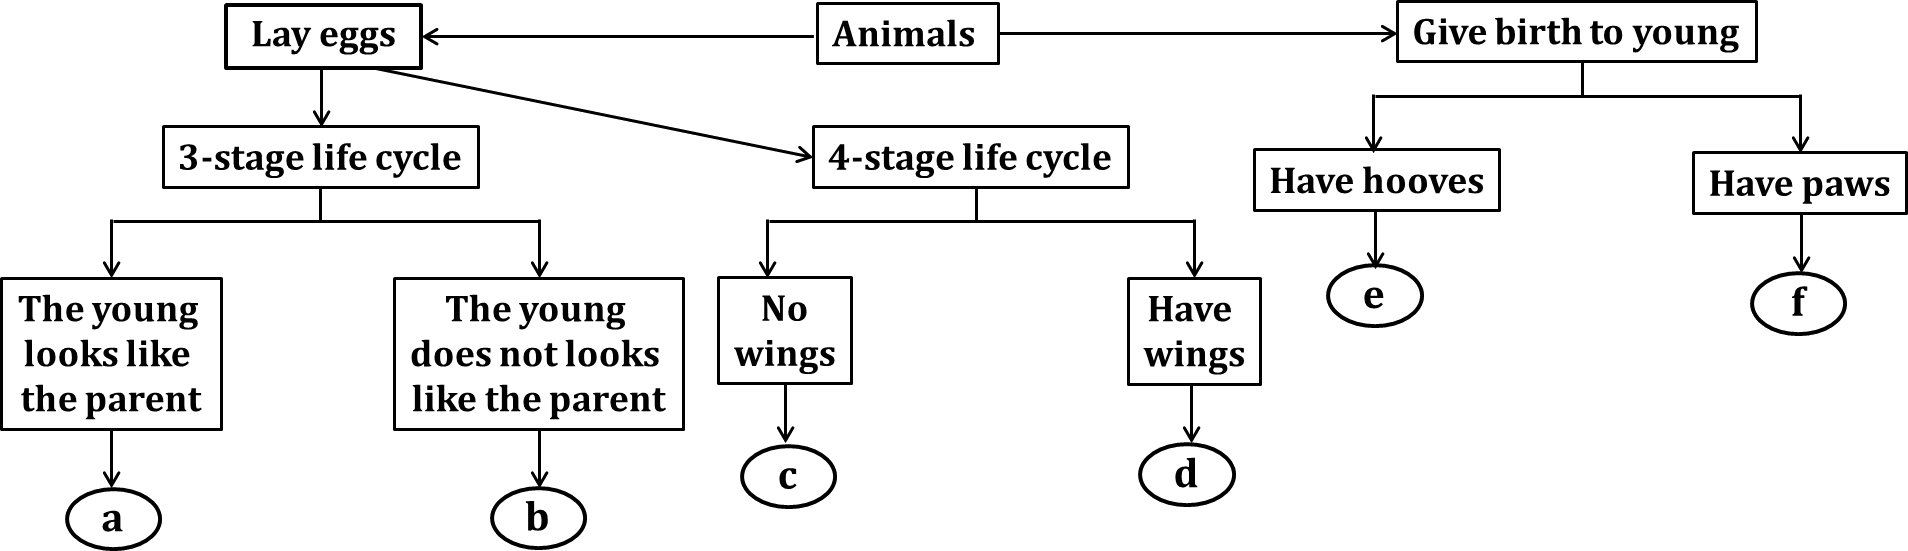 Flowchart shows the characteristics of animals